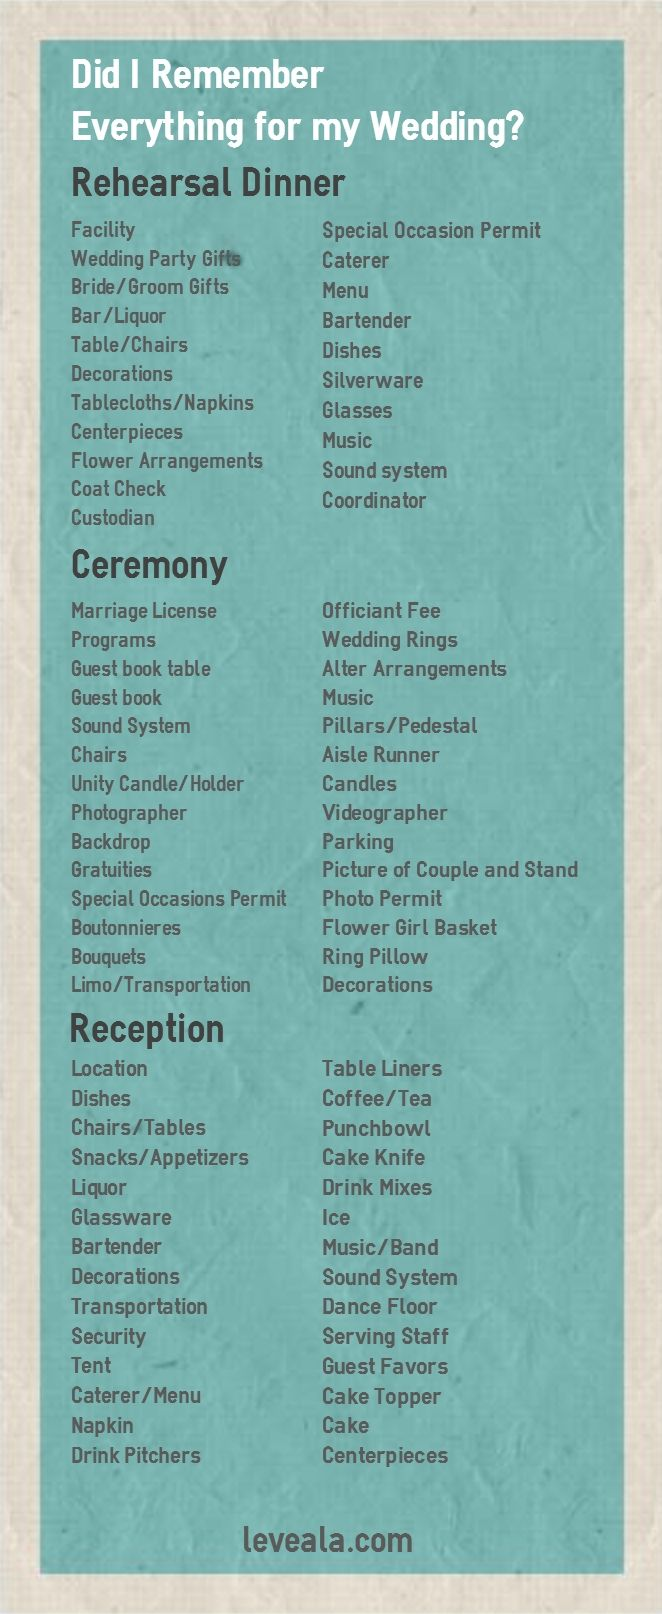 Here Is A Wedding Checklist Of Everything You Need To Have At Your Rehearsal